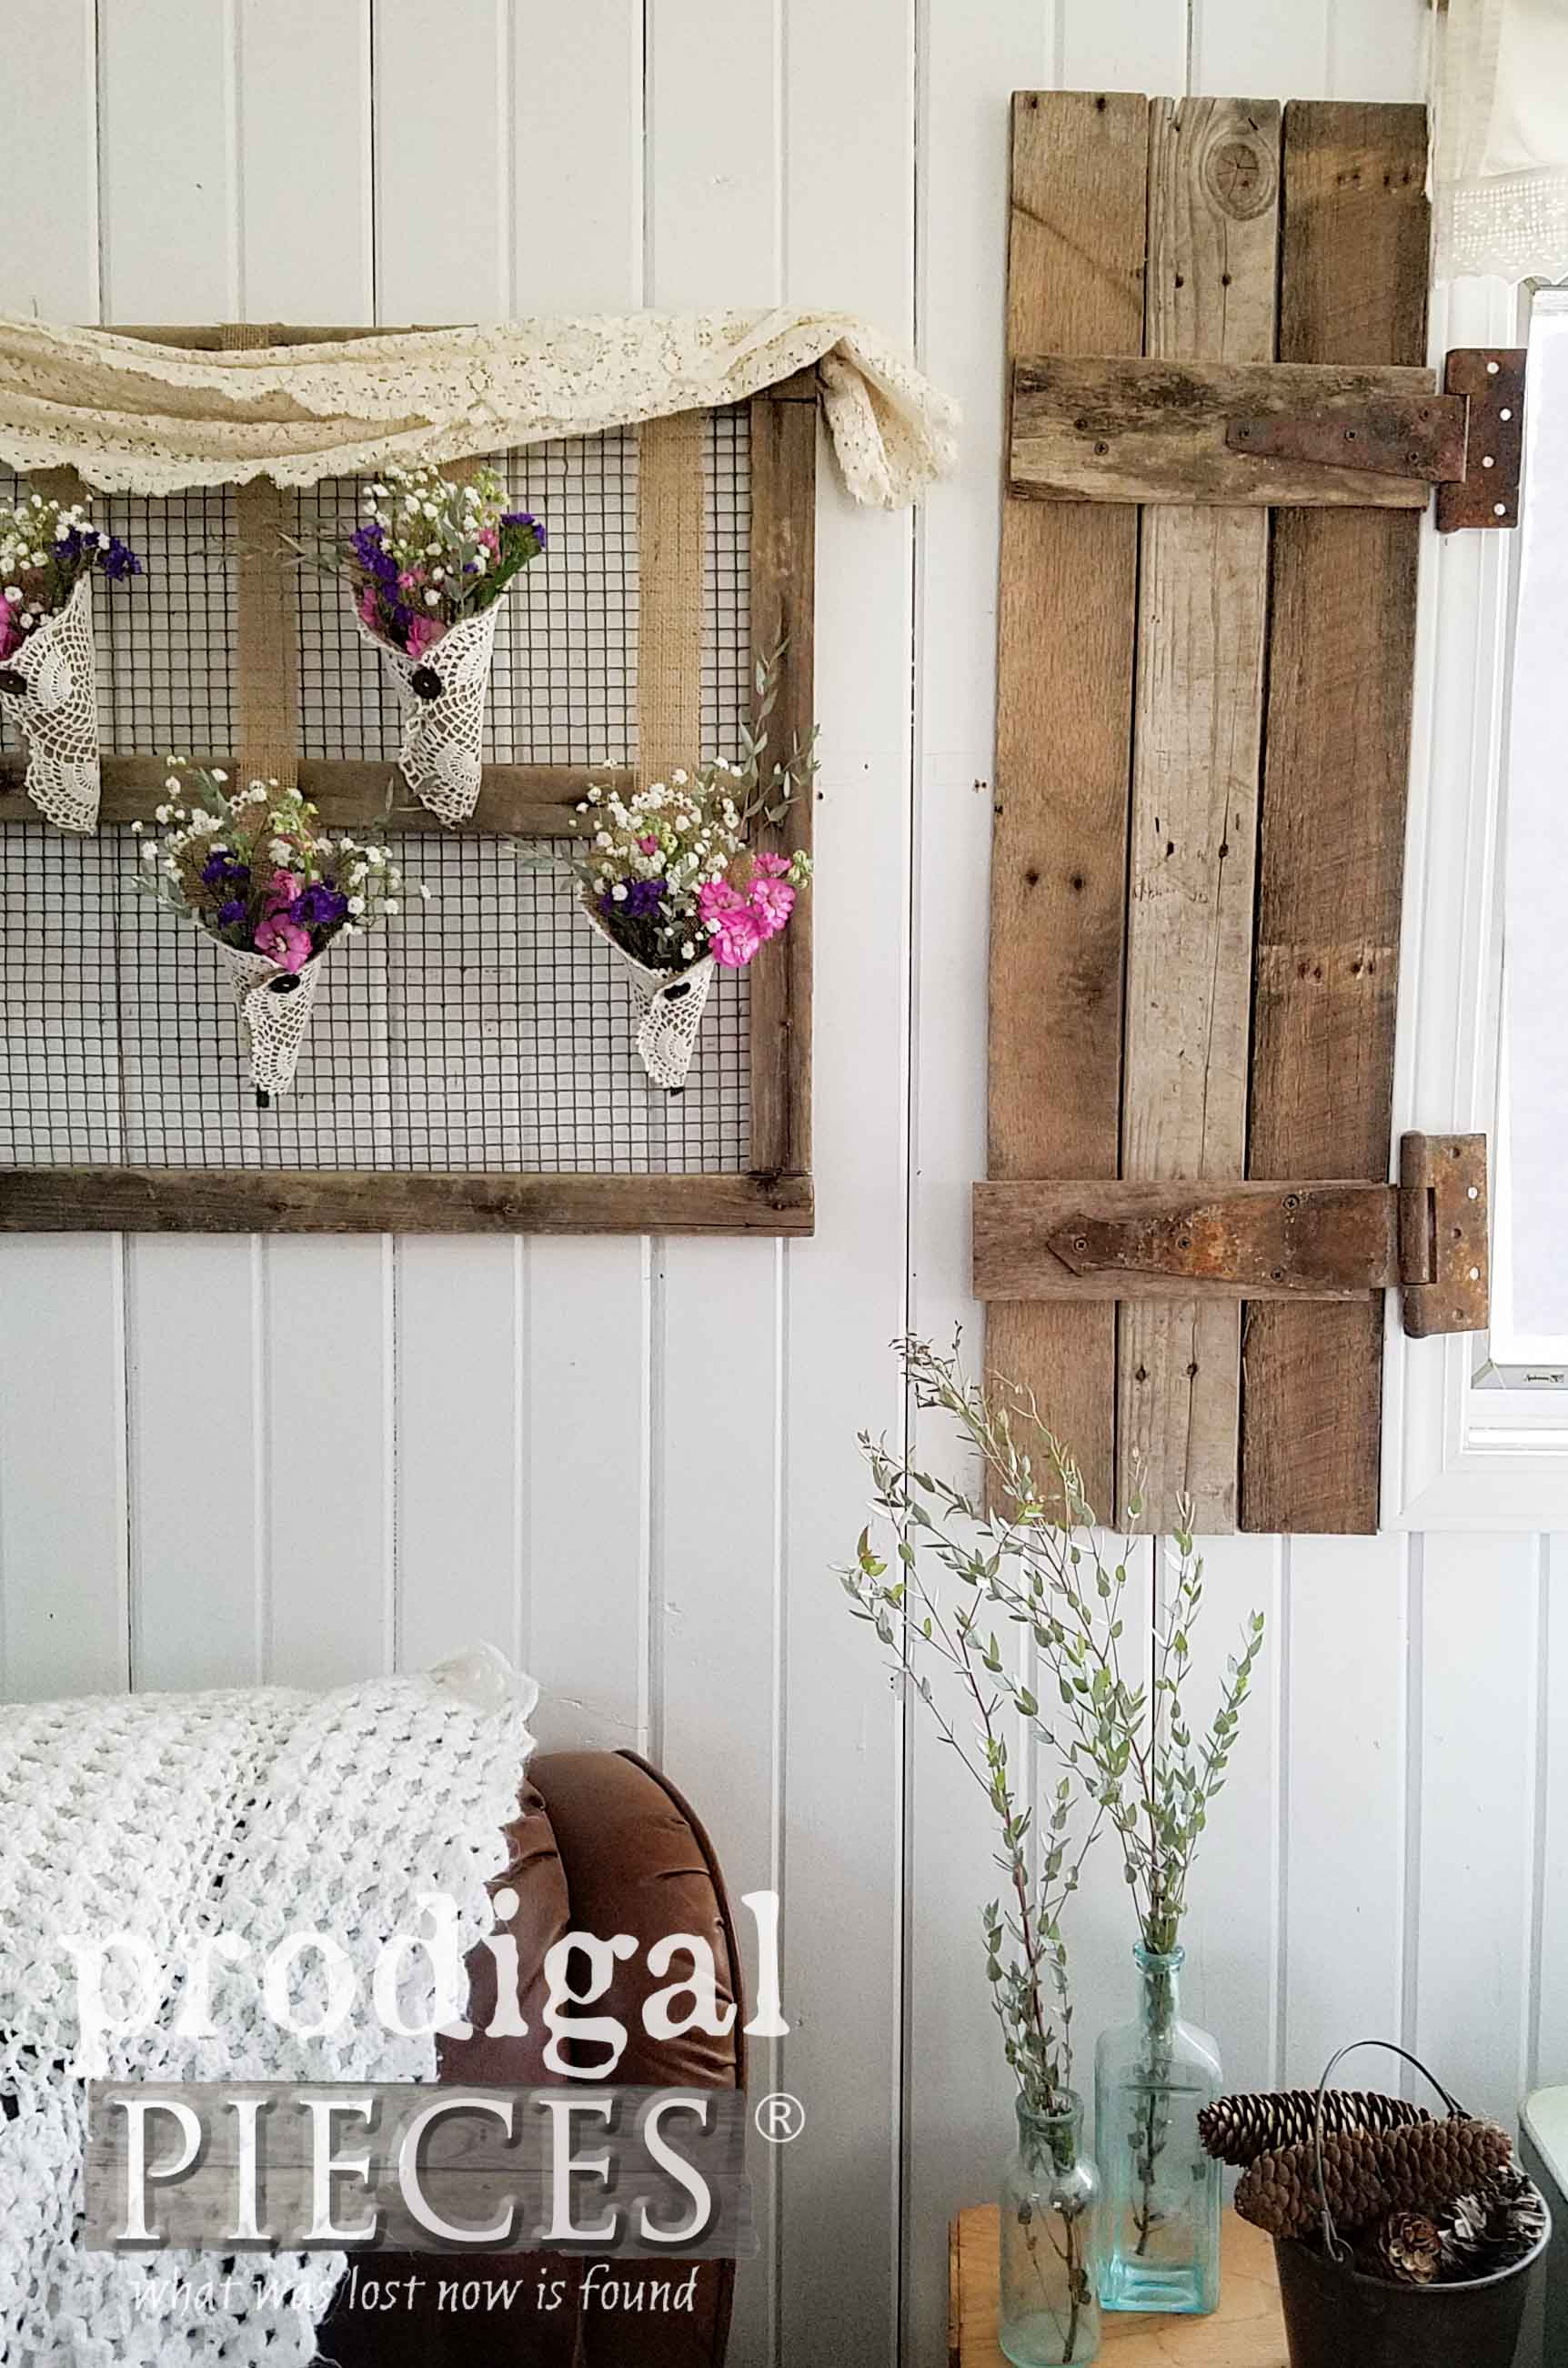 Repurposed Farmhouse Home Decor with Burlap, Doilies, and Vintage Finds by Larissa of Prodigal Pieces | prodigalpieces.com